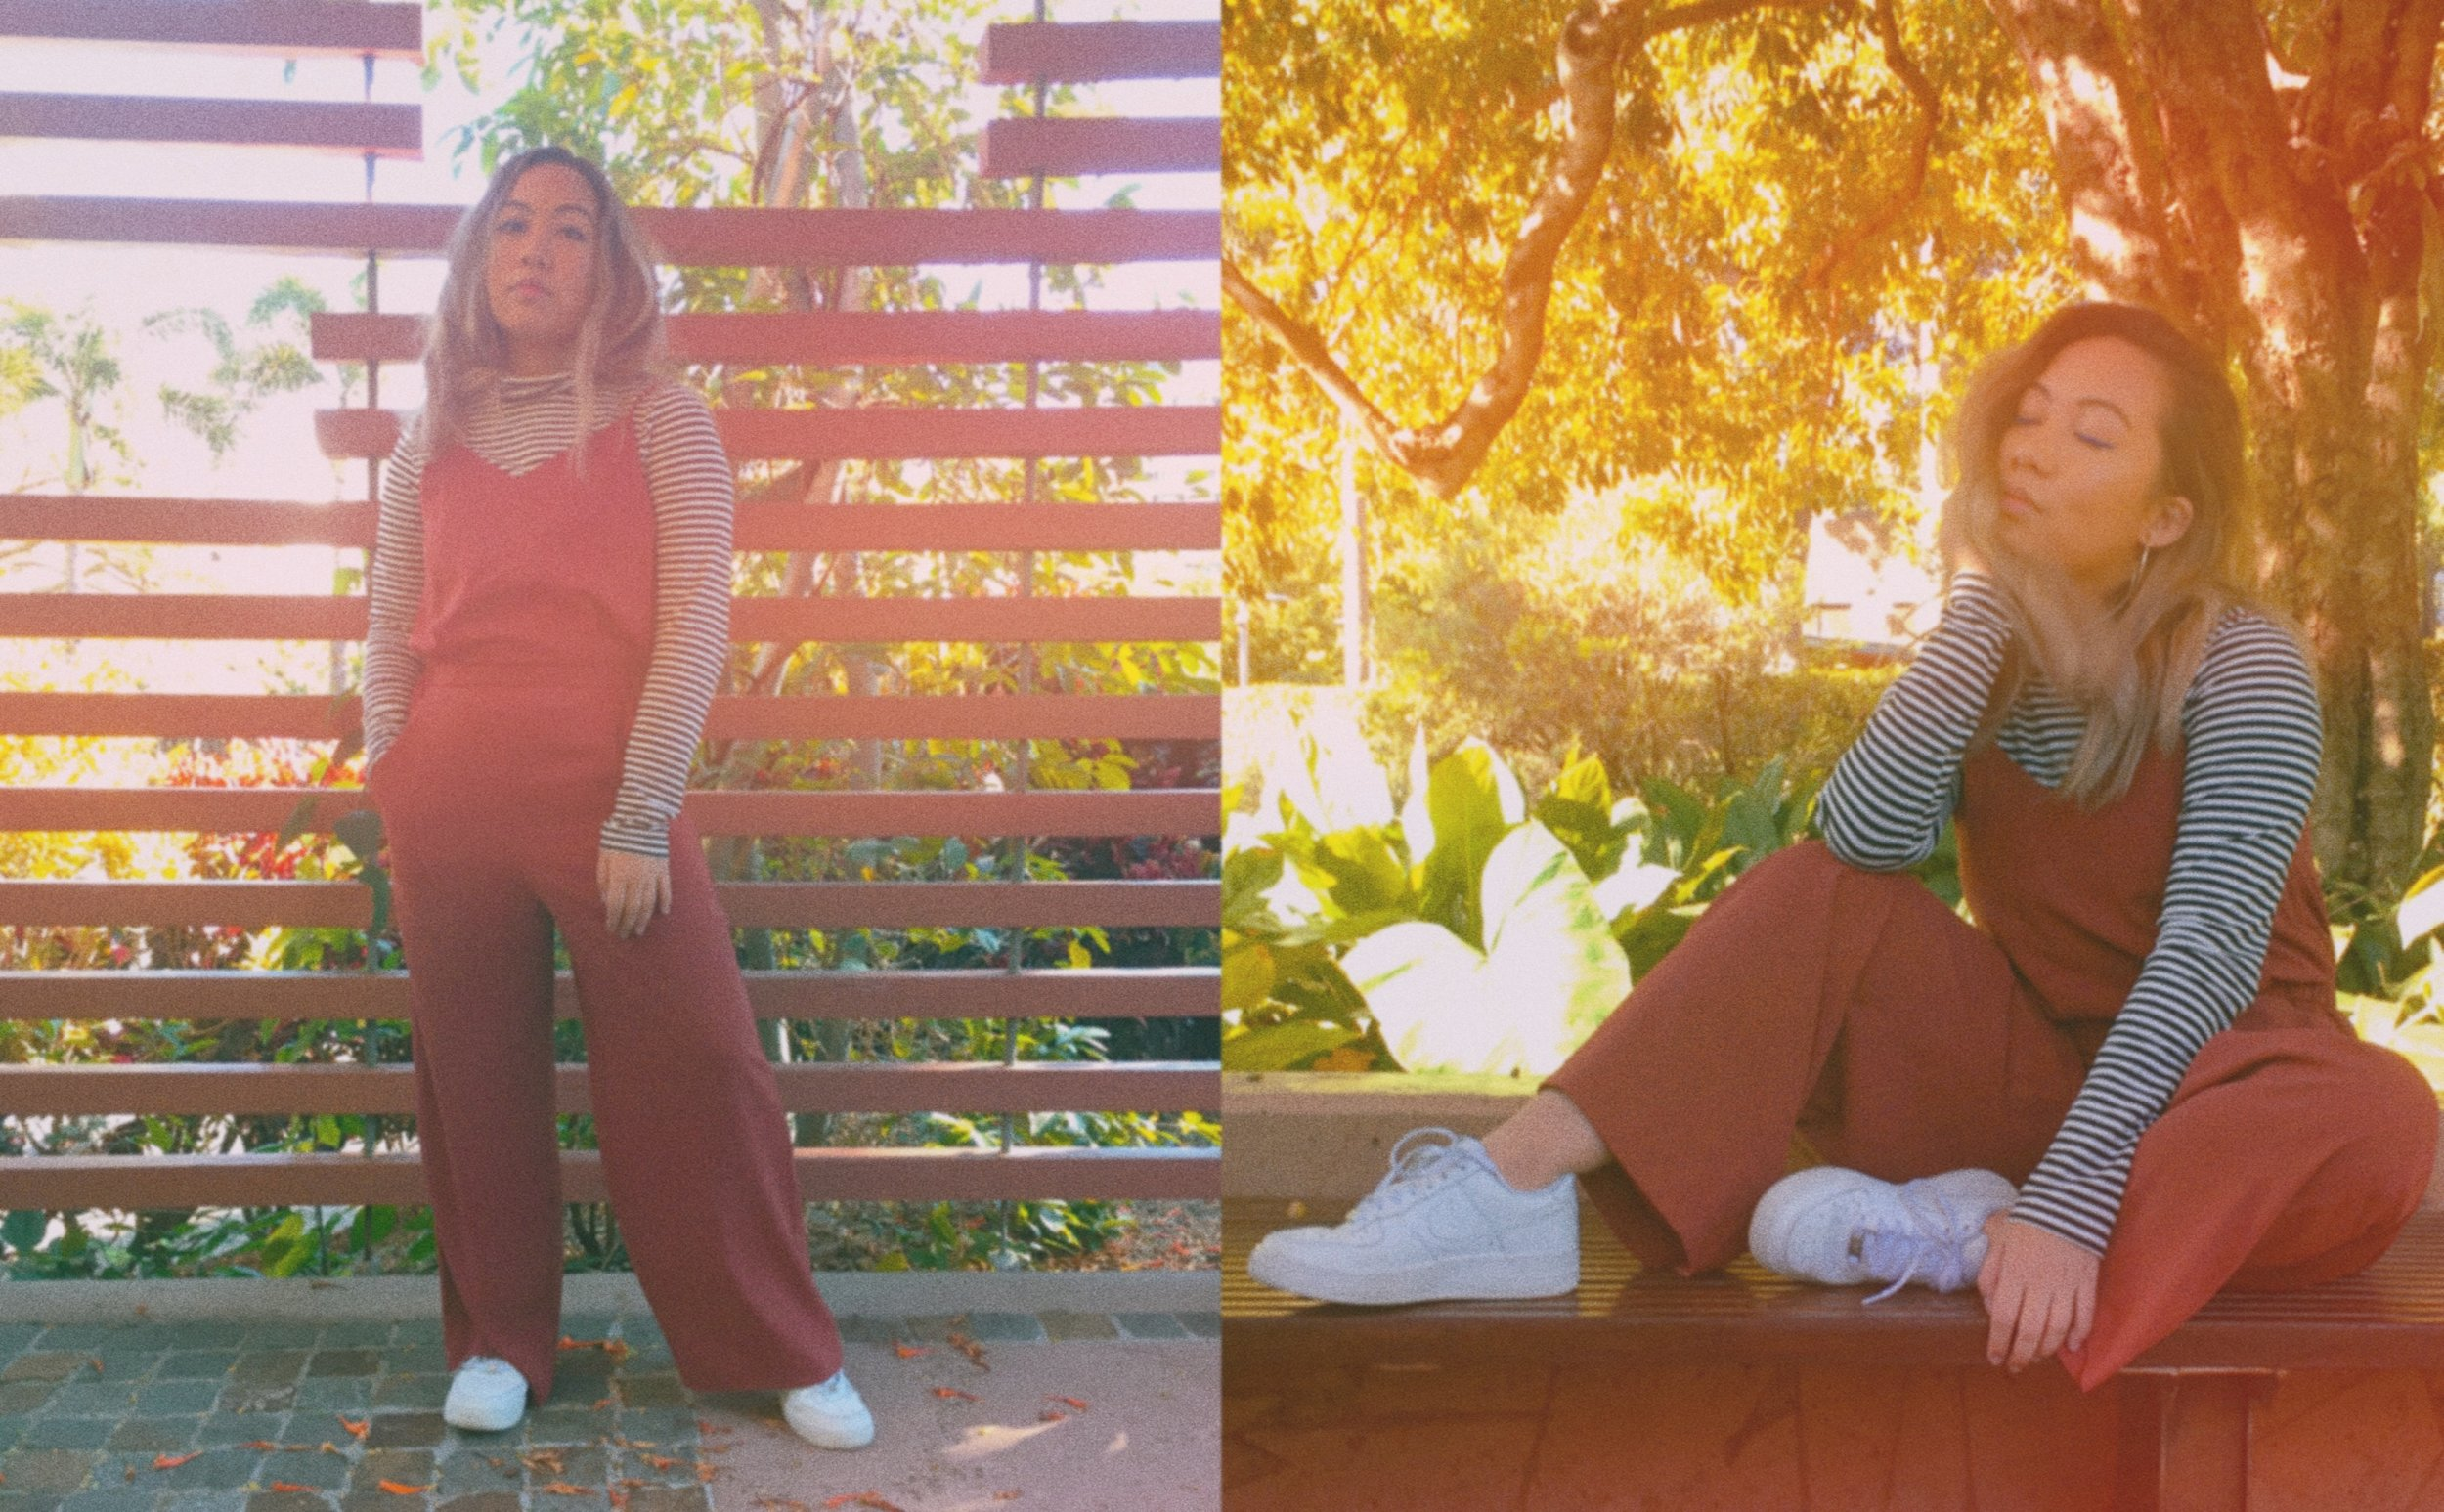 Turtleneck //  UNIQLO Heattech   (Similar Item)  Shoes //  Nike Air Force 1  Jumpsuit // UNIQLO (Similar Items:  One ,  Two ,  Three ,  Four )